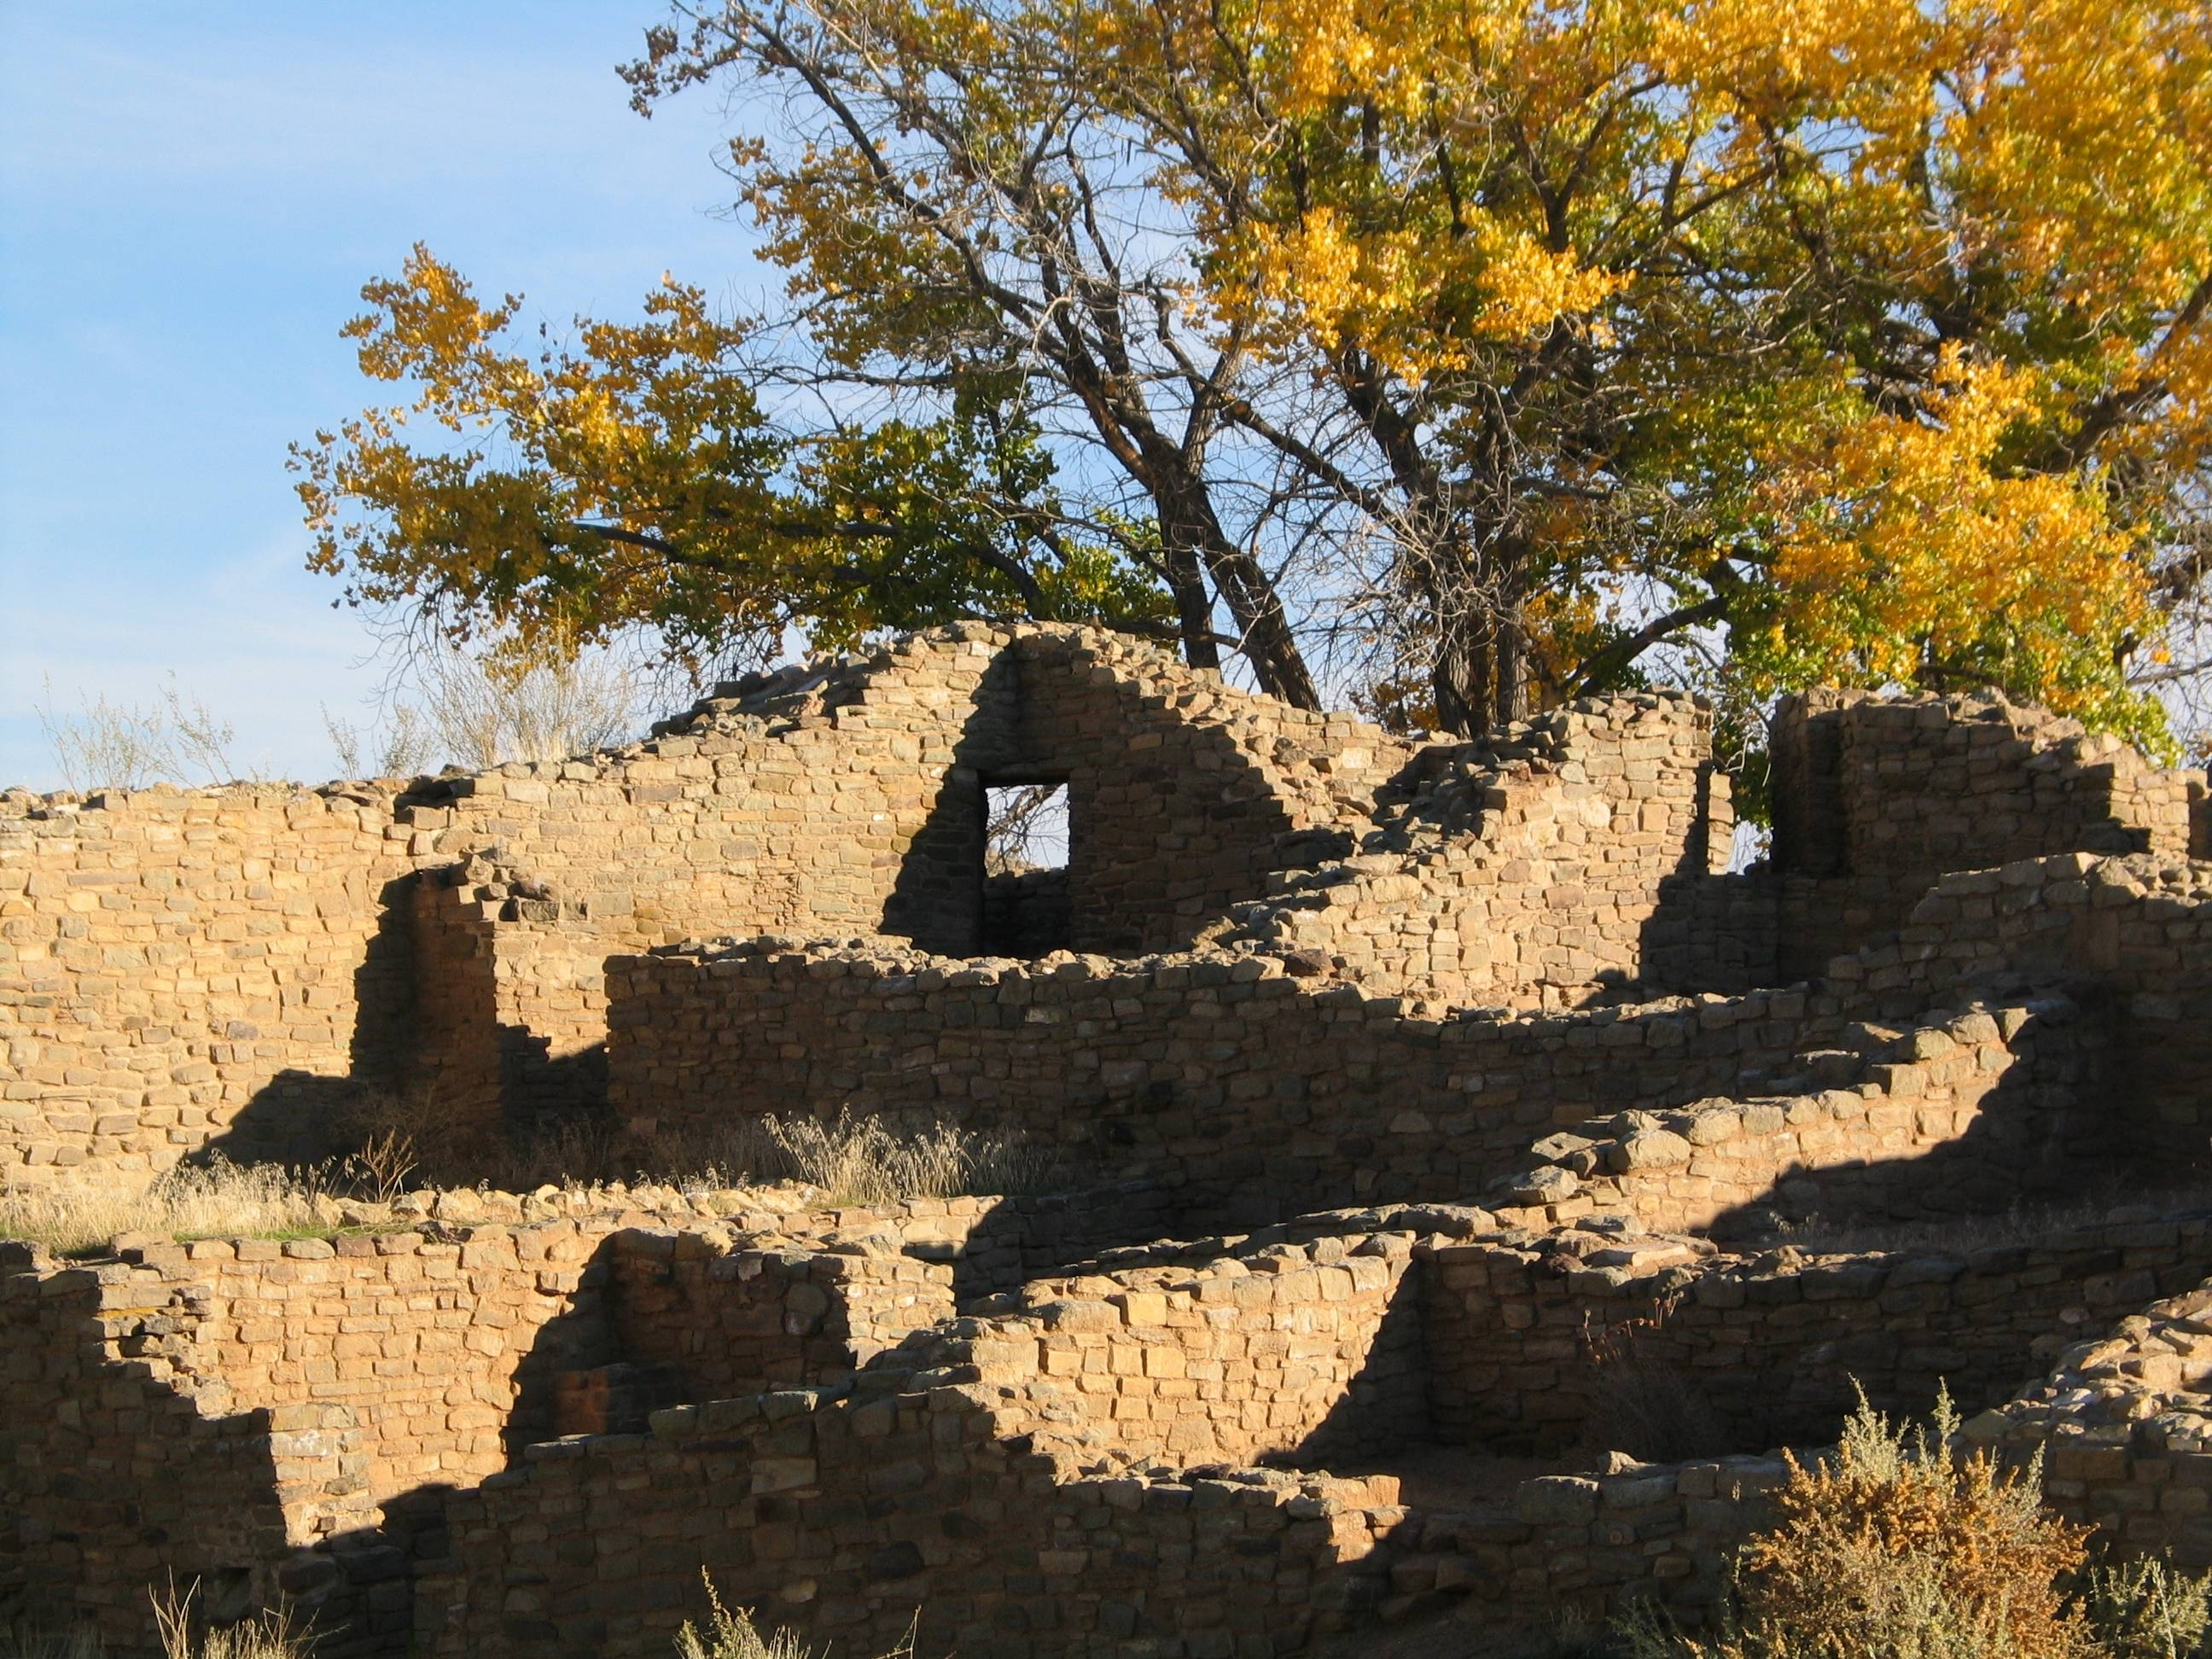 One of three corner doorways is seen at Aztec West at the Aztec Ruins National Monument in New Mexico.